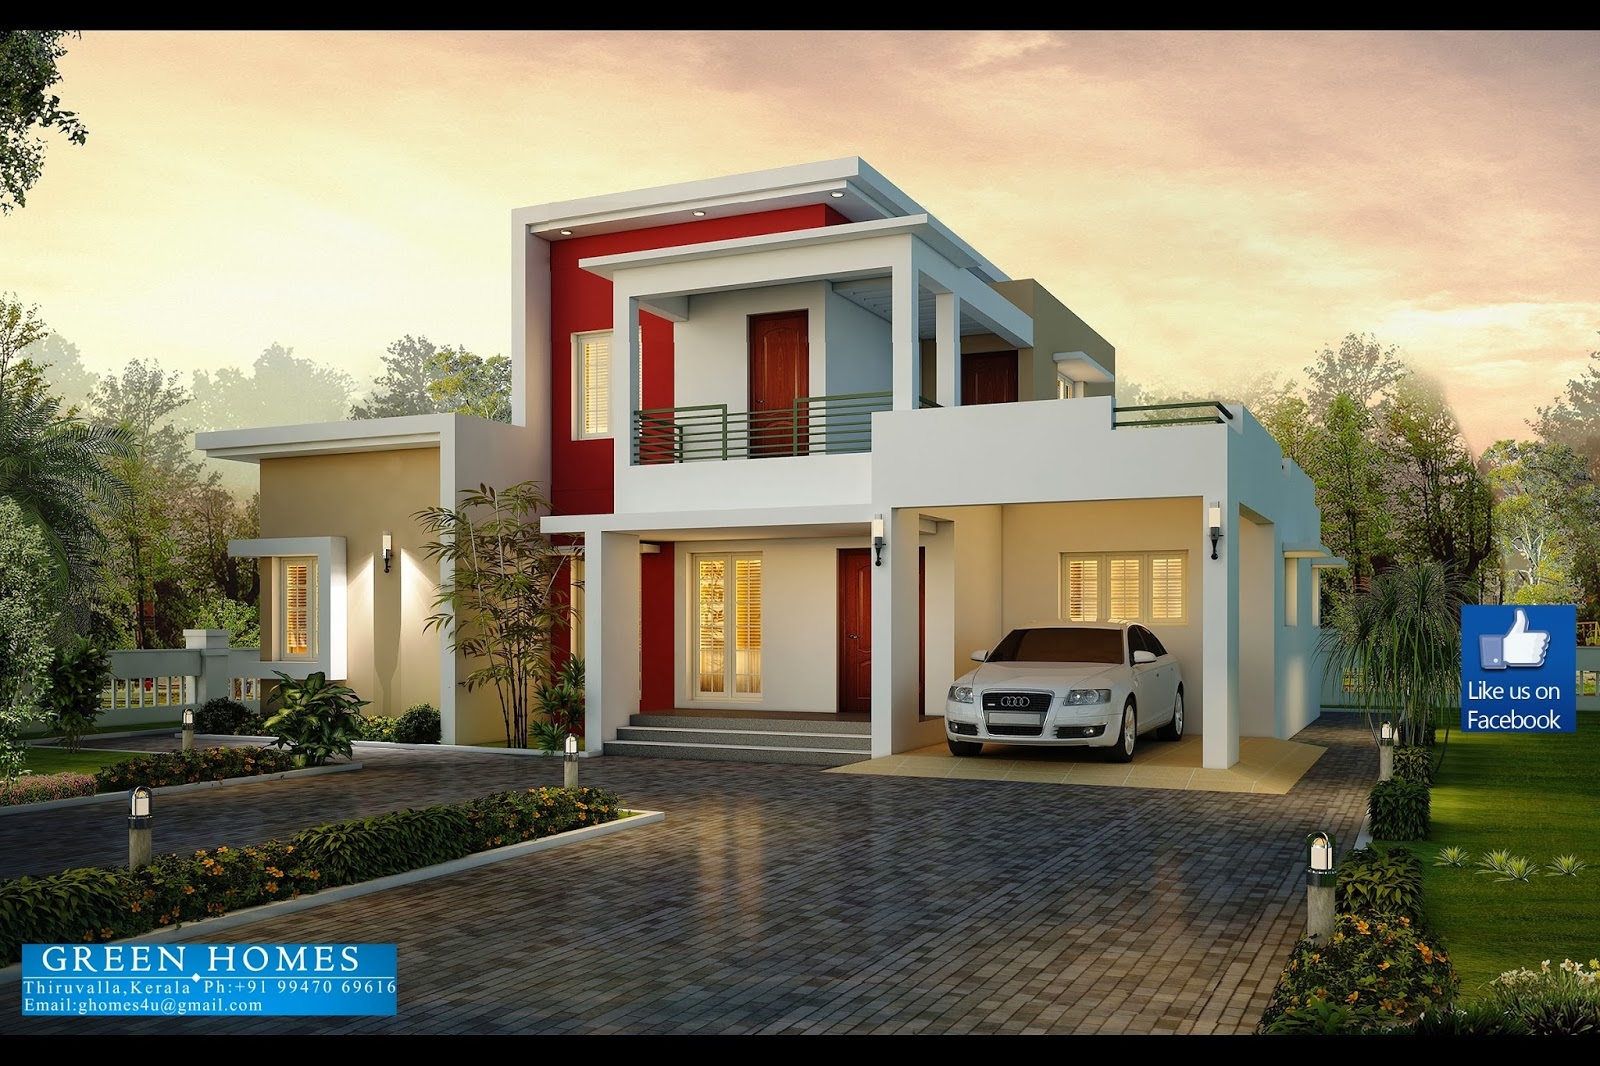 Green homes awesome 3 bedroom modern house design for Modern three bedroom house plans